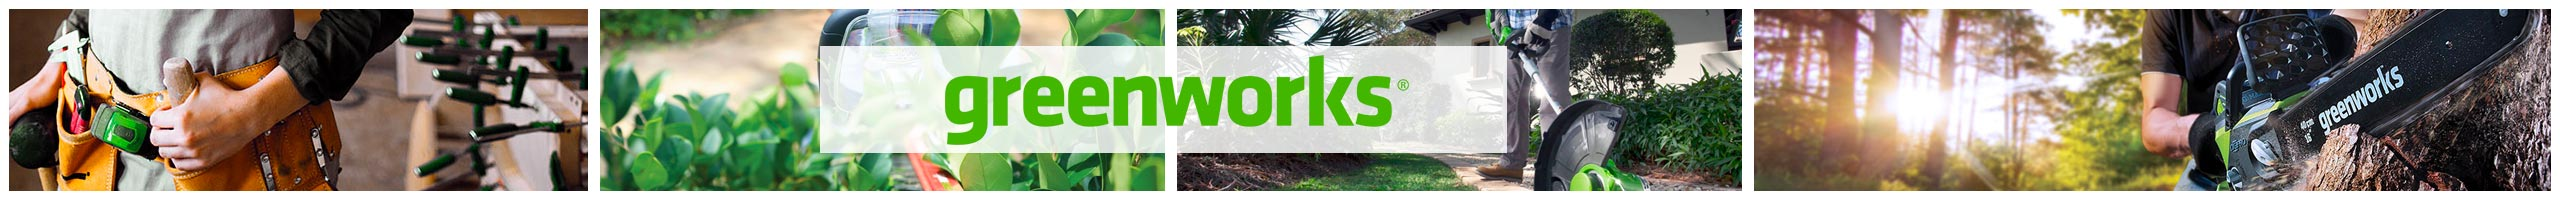 Test et avis outil jardin Greenworks pas cher